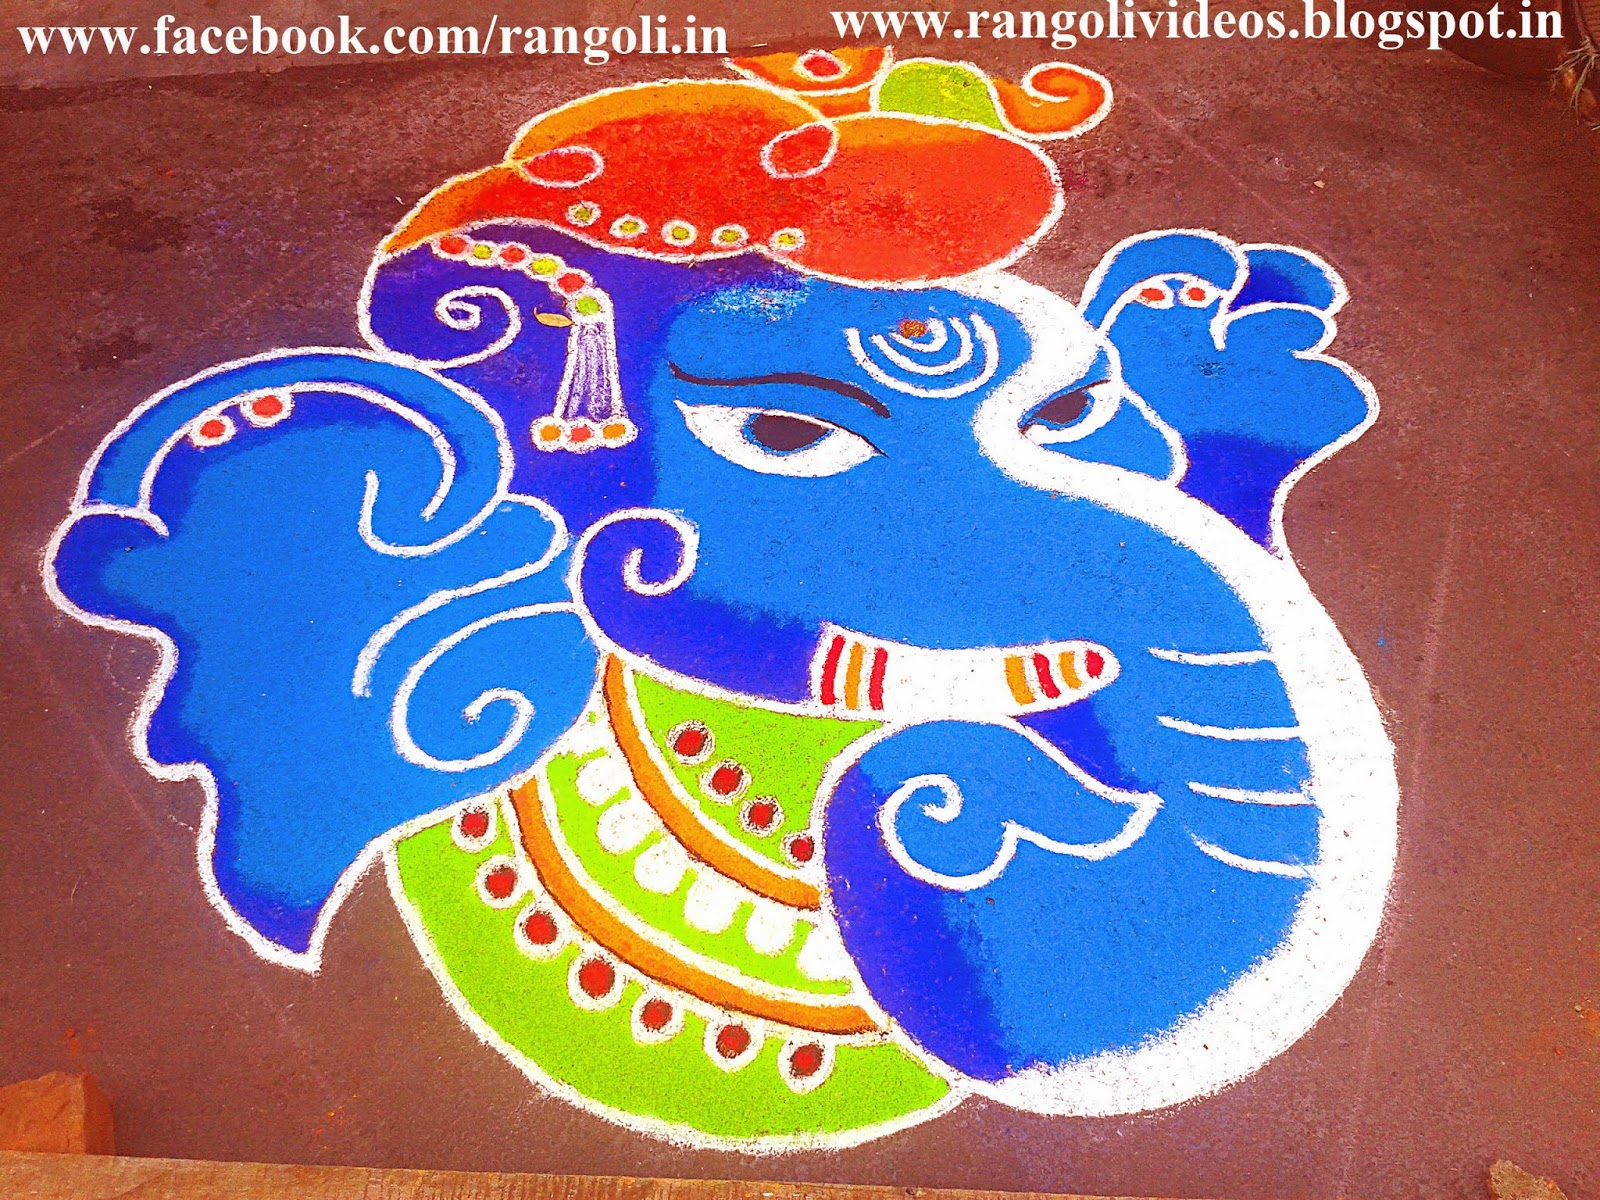 rangoli designs wallpaper stars - photo #48